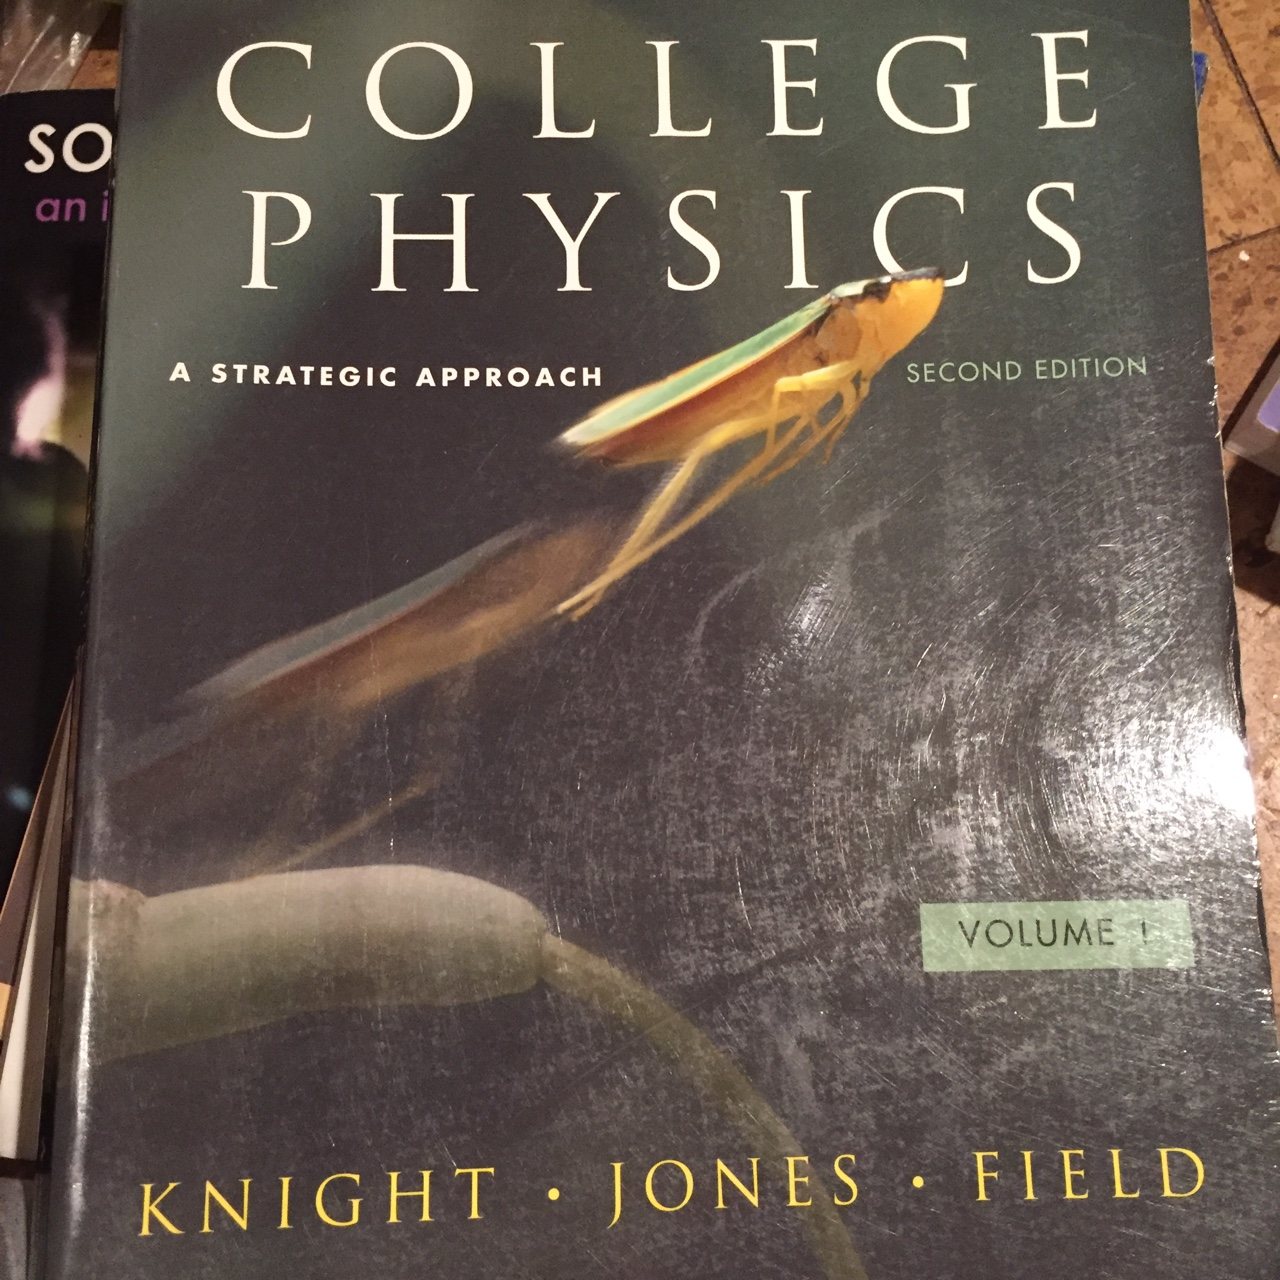 College Physics bundle pack Textbook & workbook    - Depop